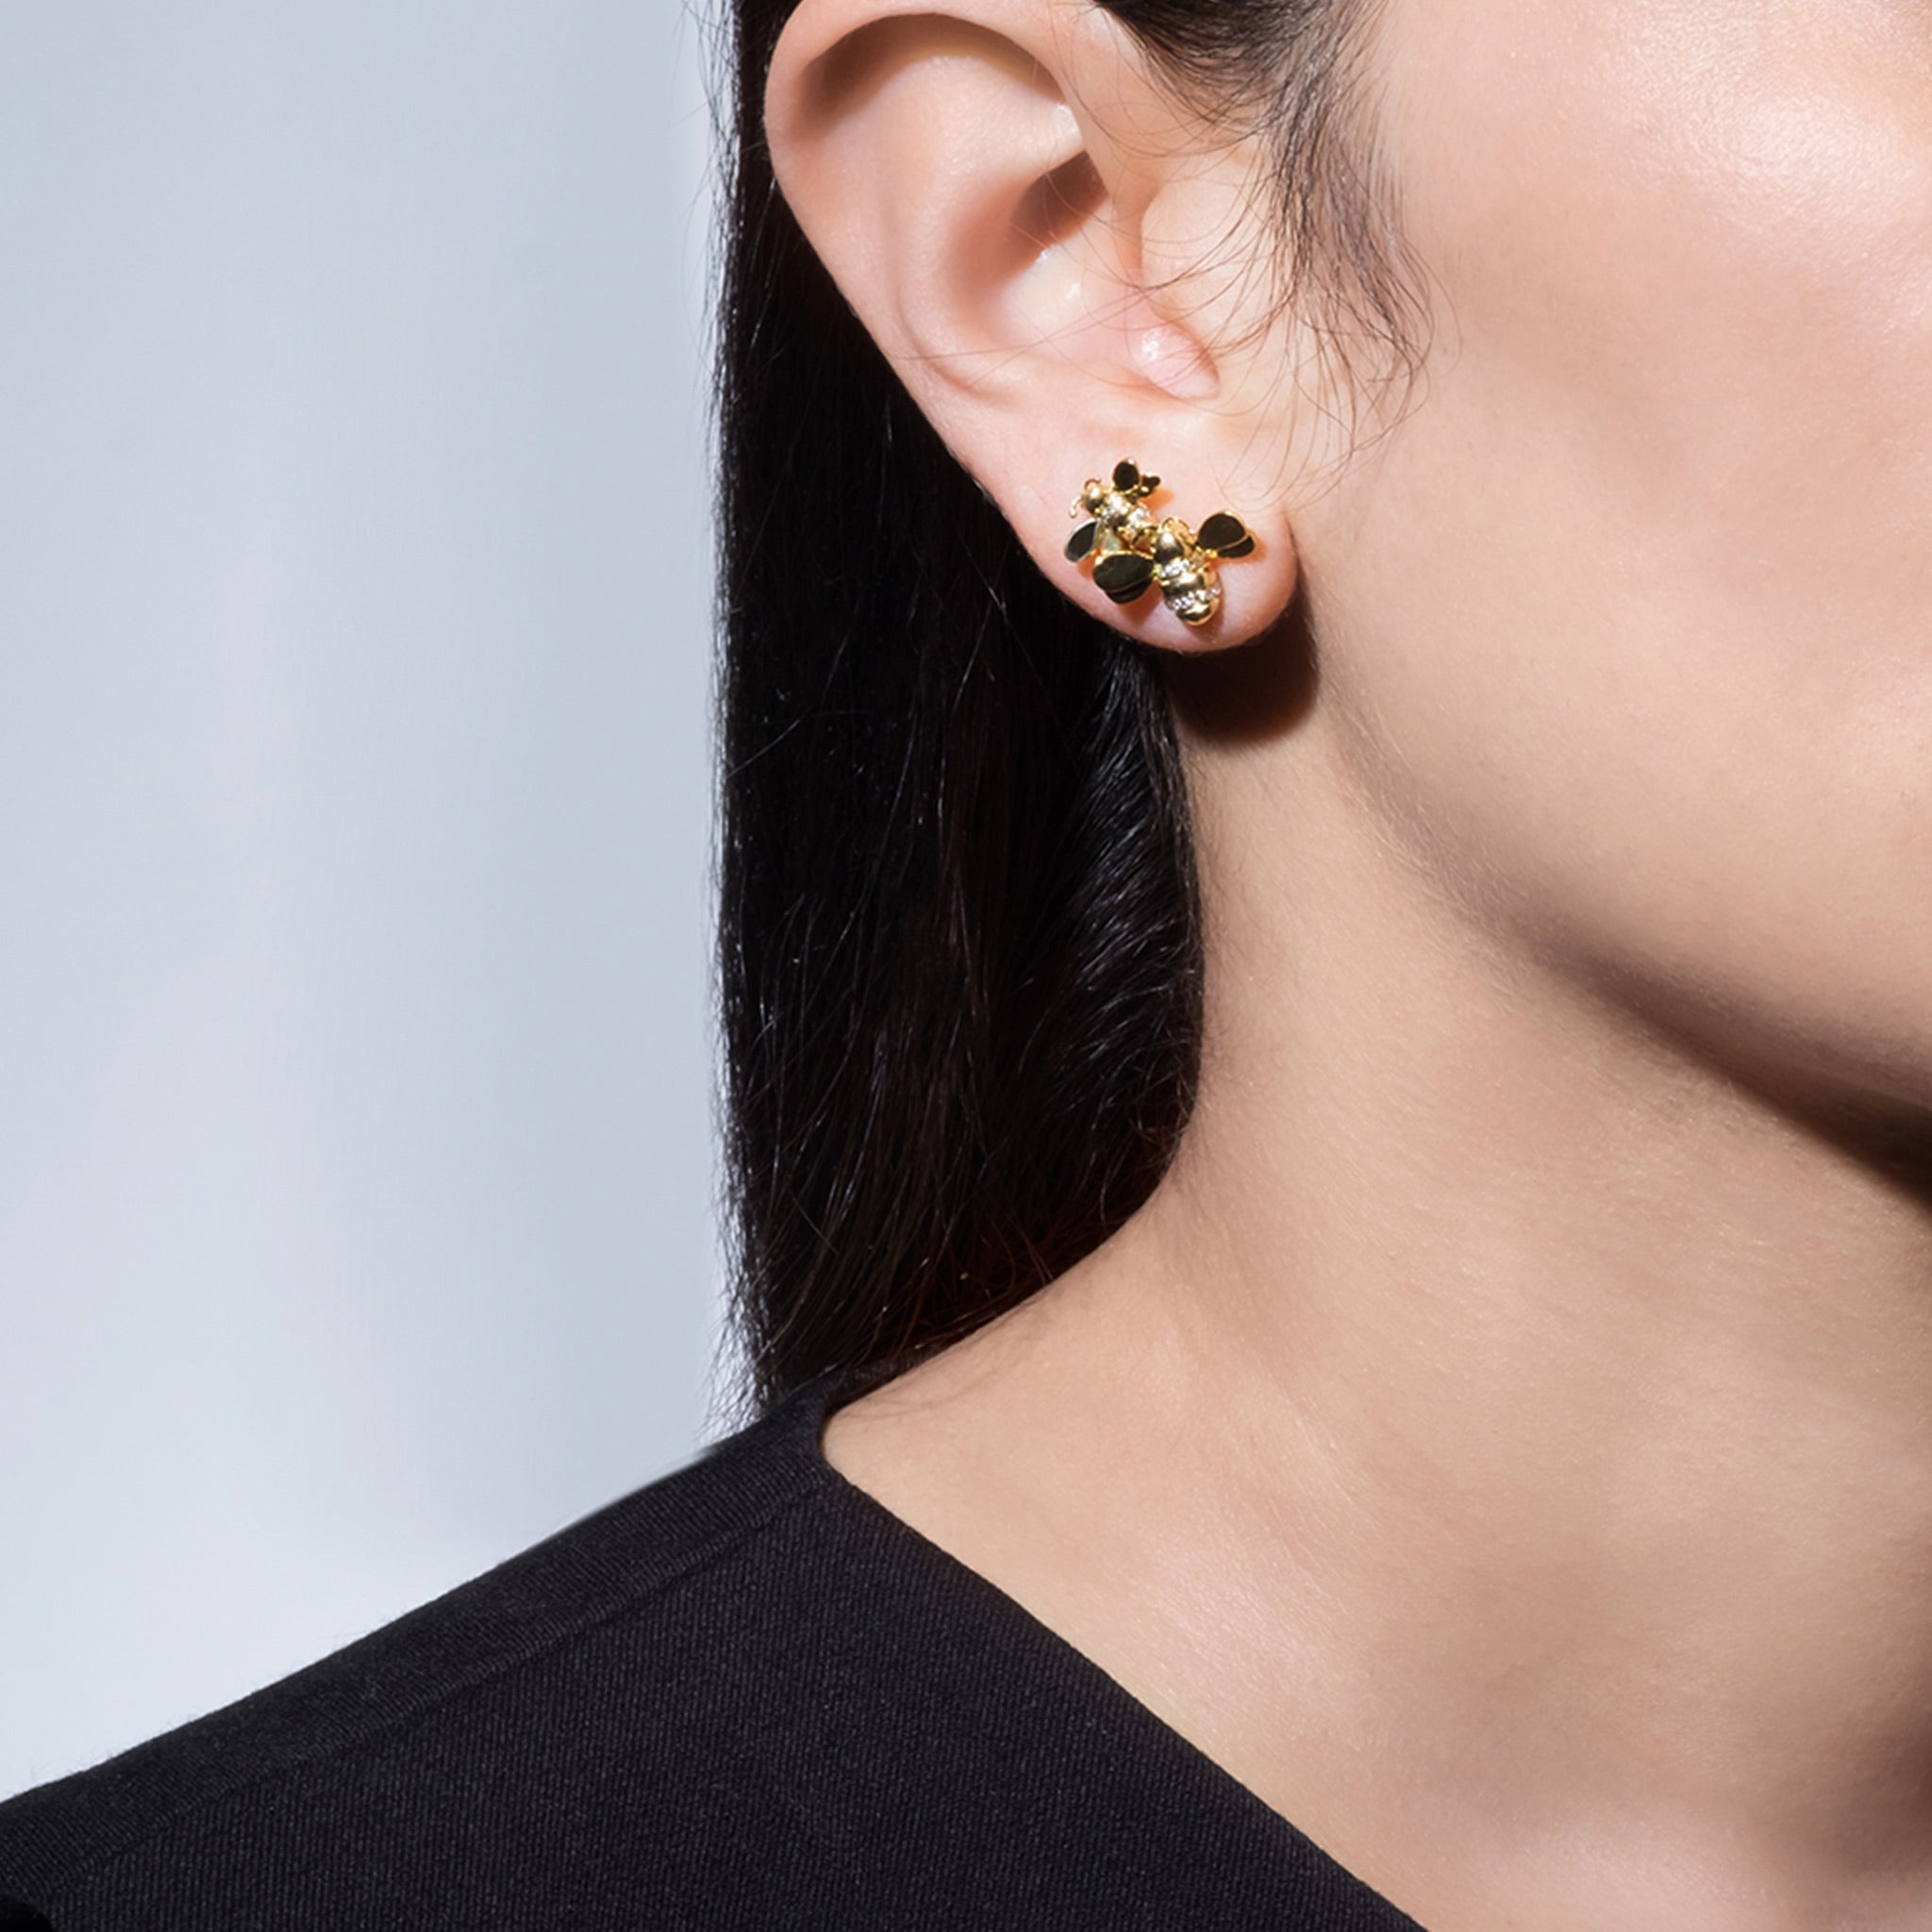 Mimi-So-Wonderland-Bumble-Bee-Stud-Earrings